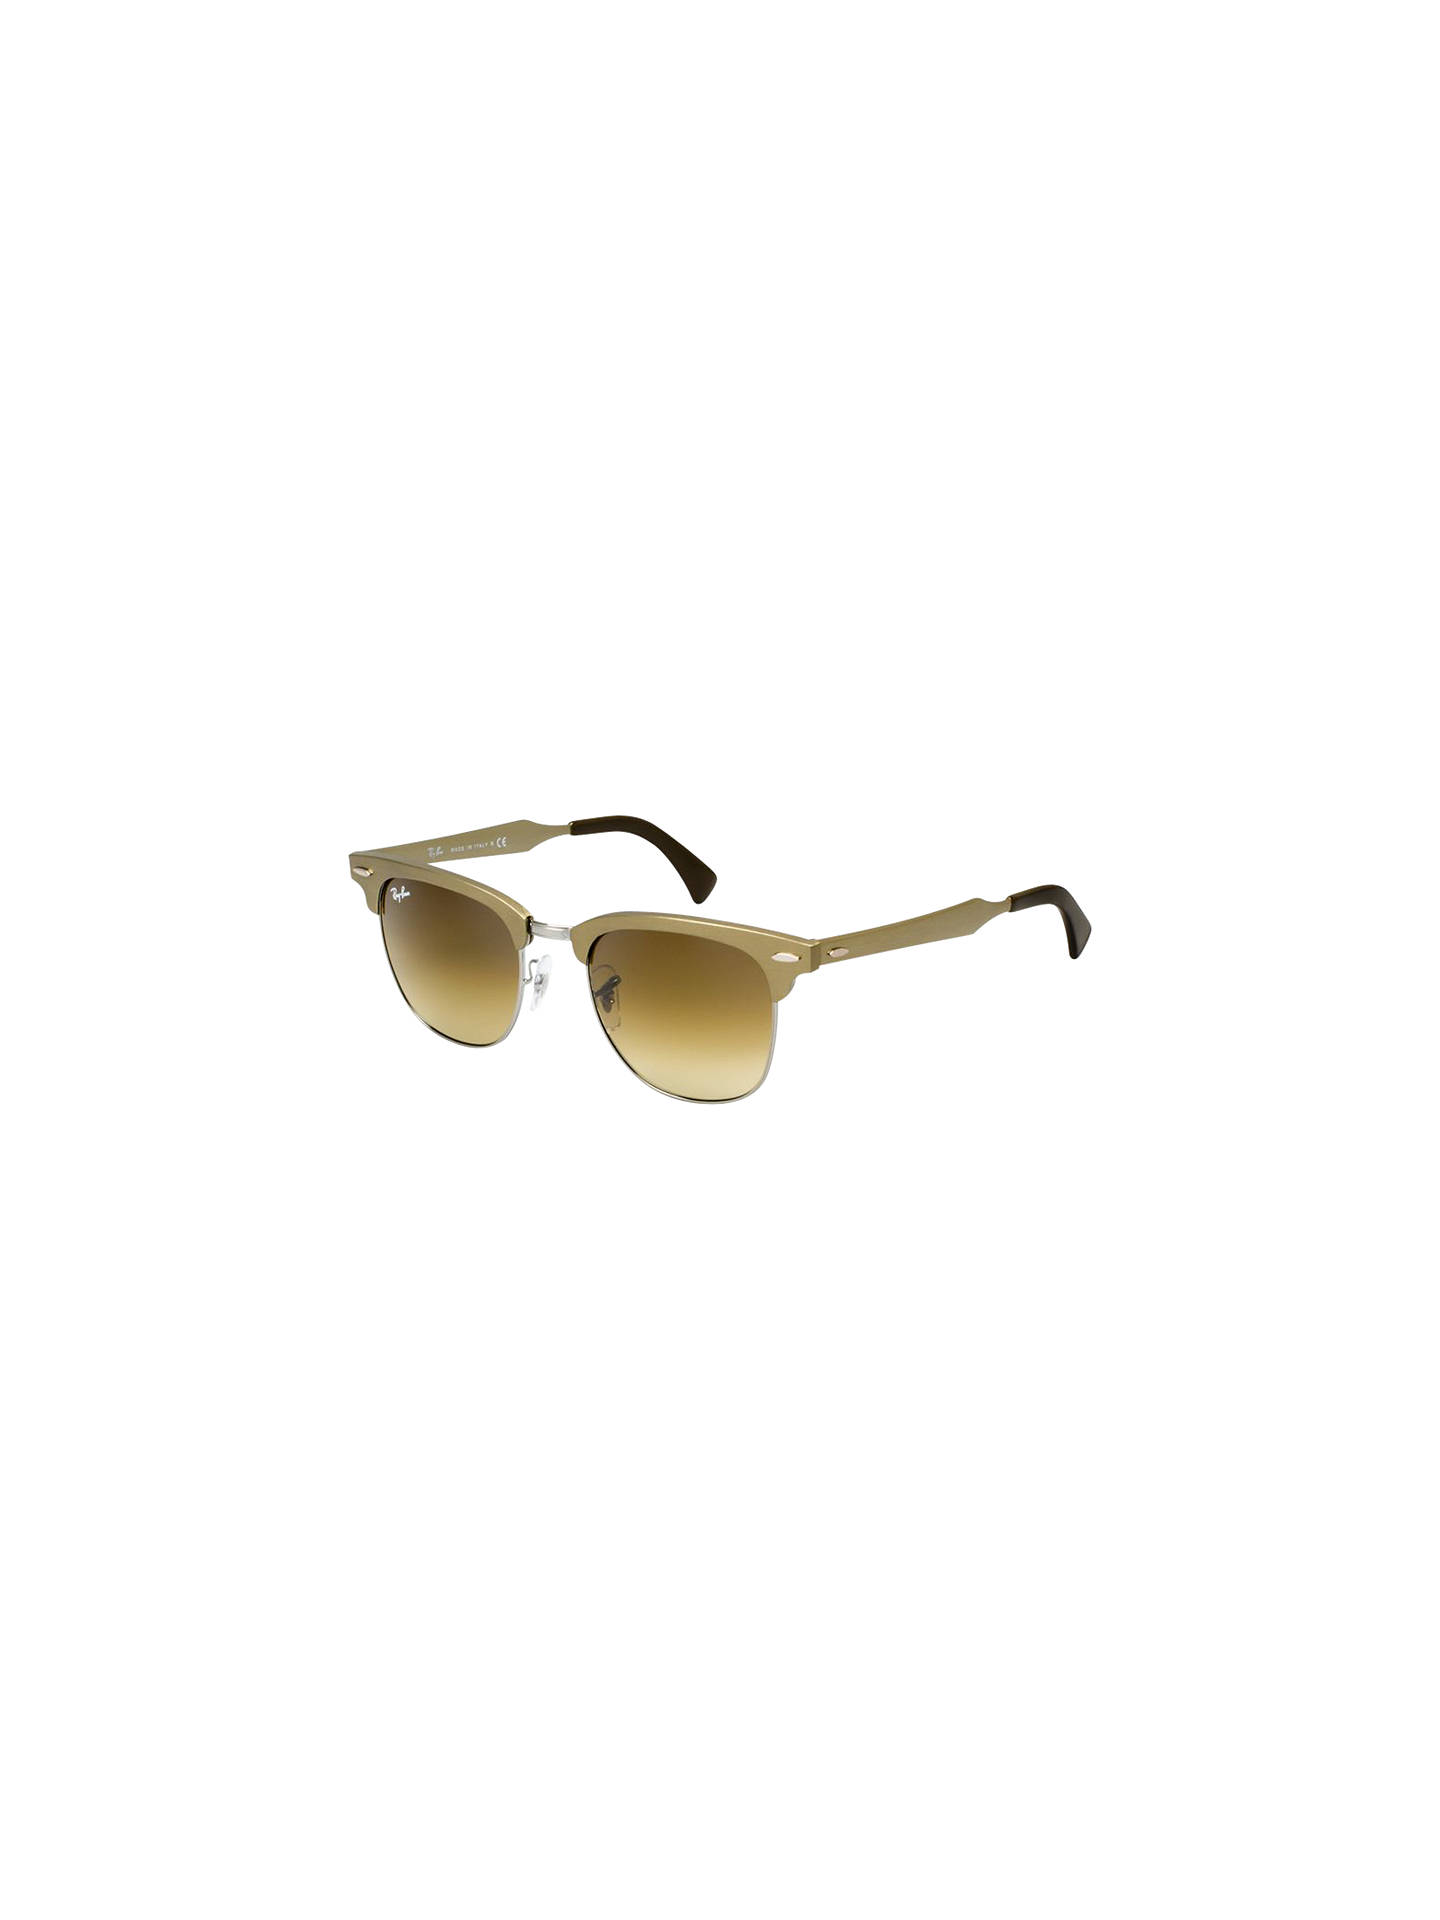 532f9be0a9 BuyRay-Ban RB3507 Clubmaster Sunglasses